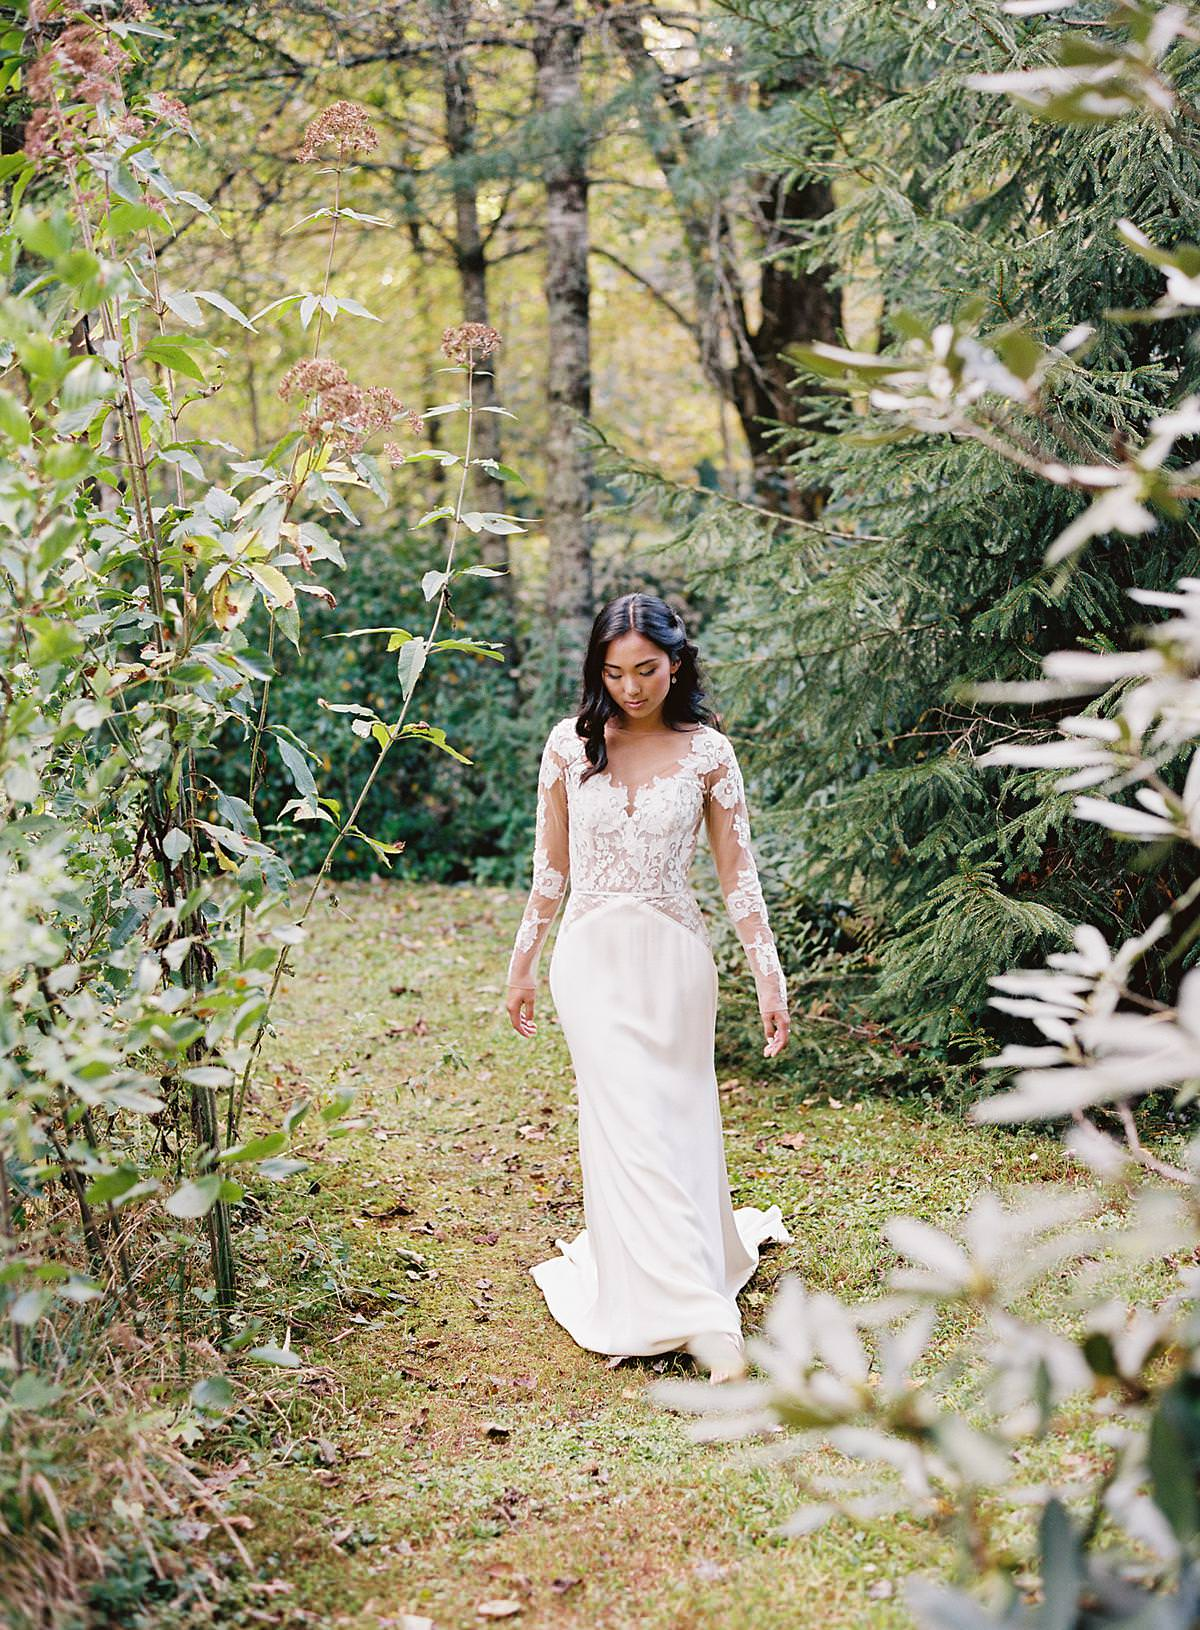 bride amidst greenery